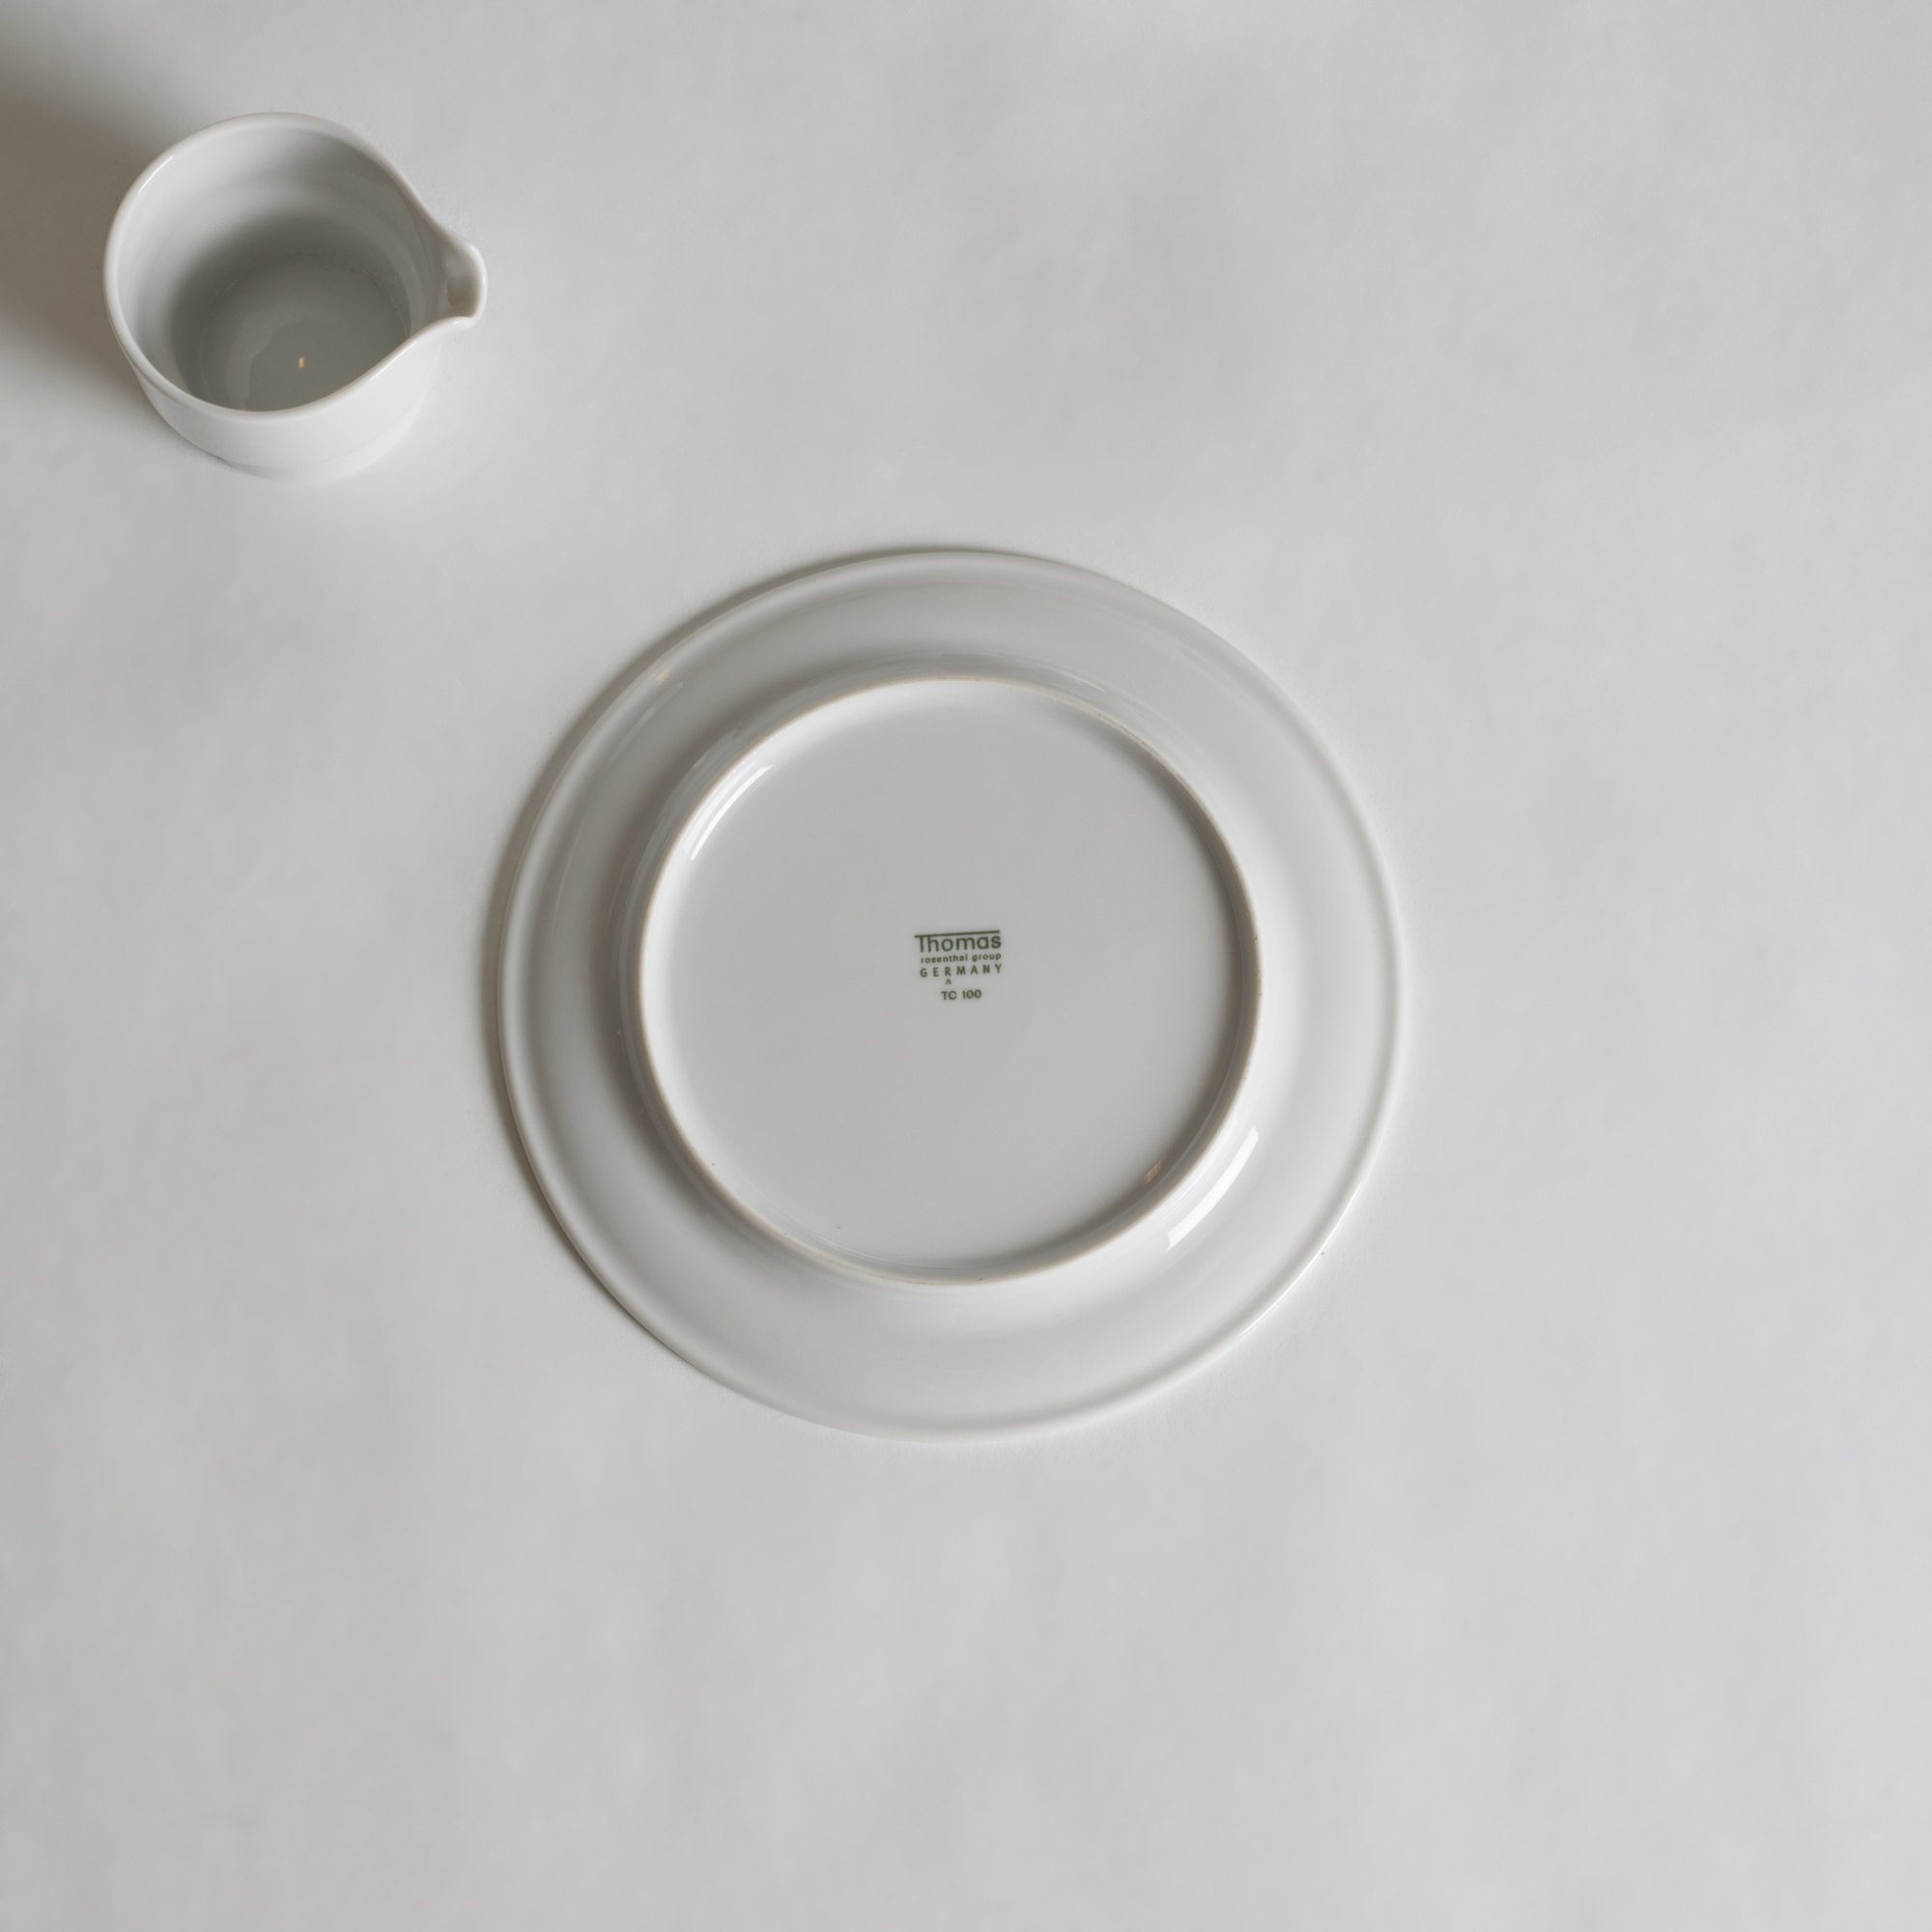 138: Nick Roericht / Stacking tableware, model TC 100 (3 of 3)